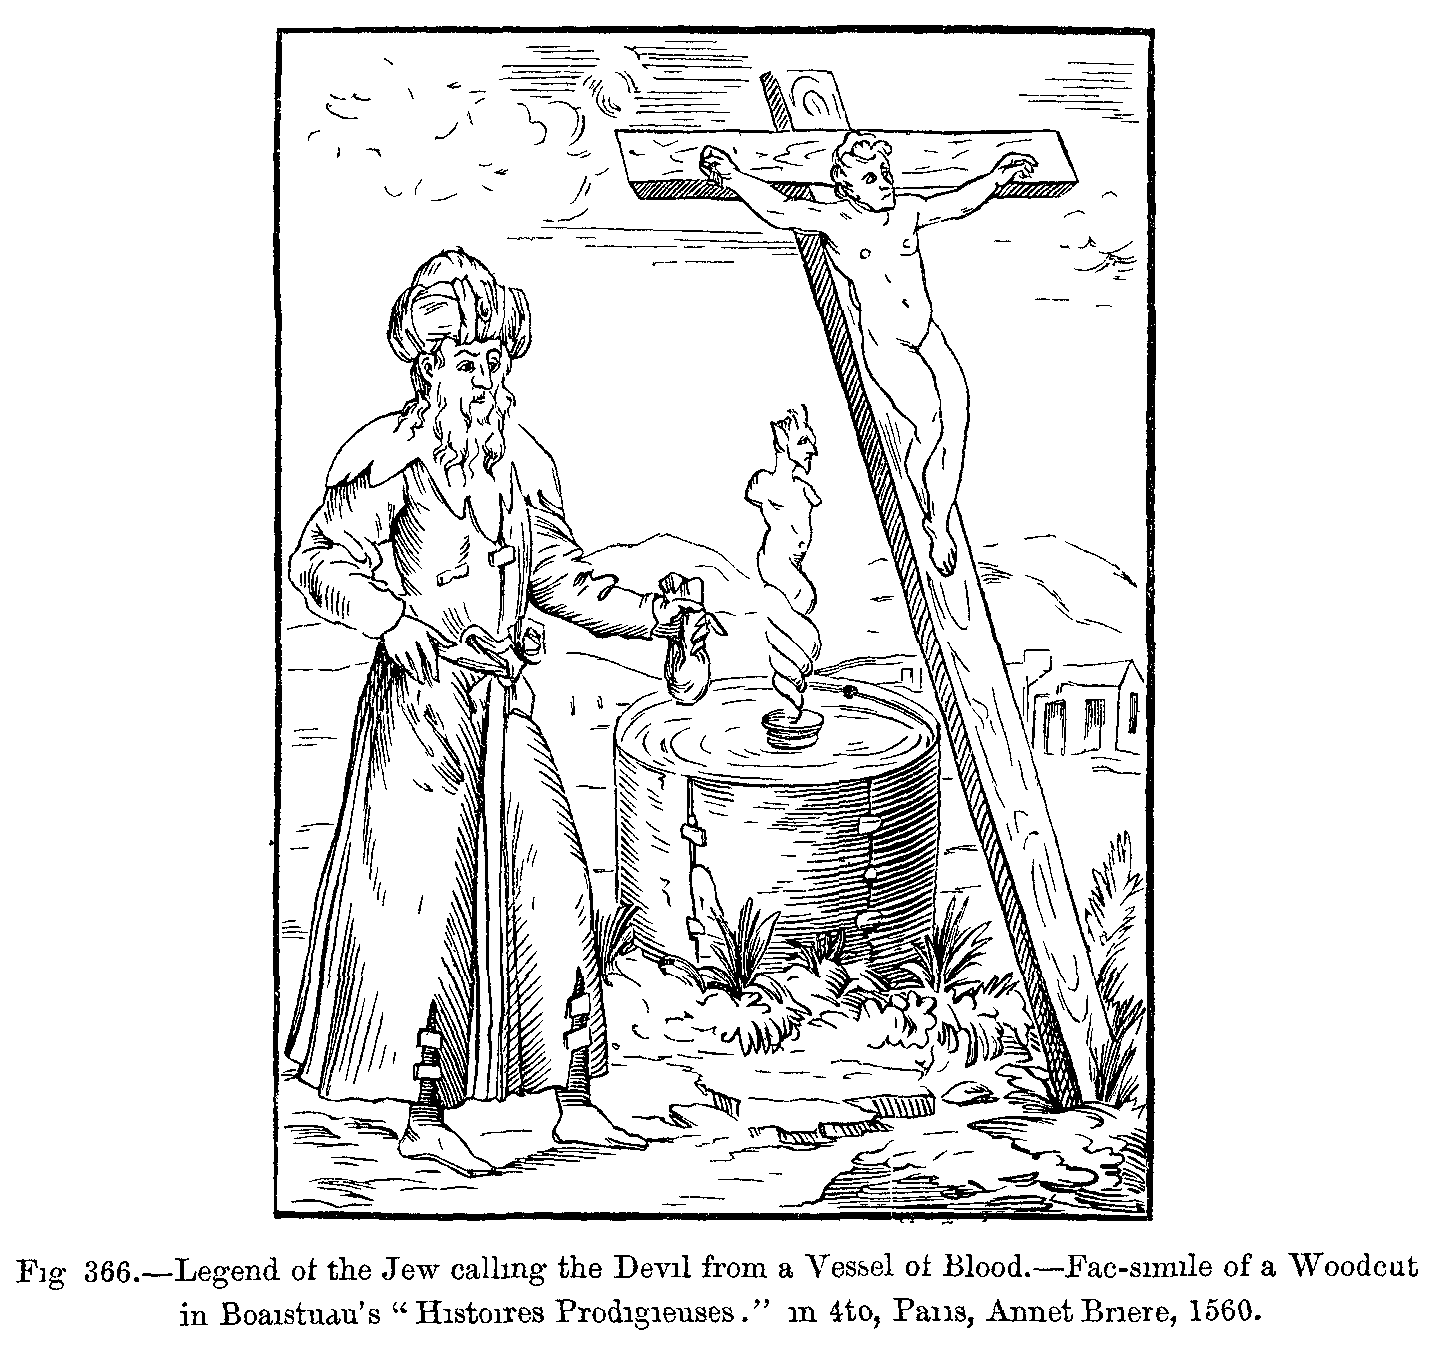 File:Legend of the Jew calling the Devil from a Vessel of